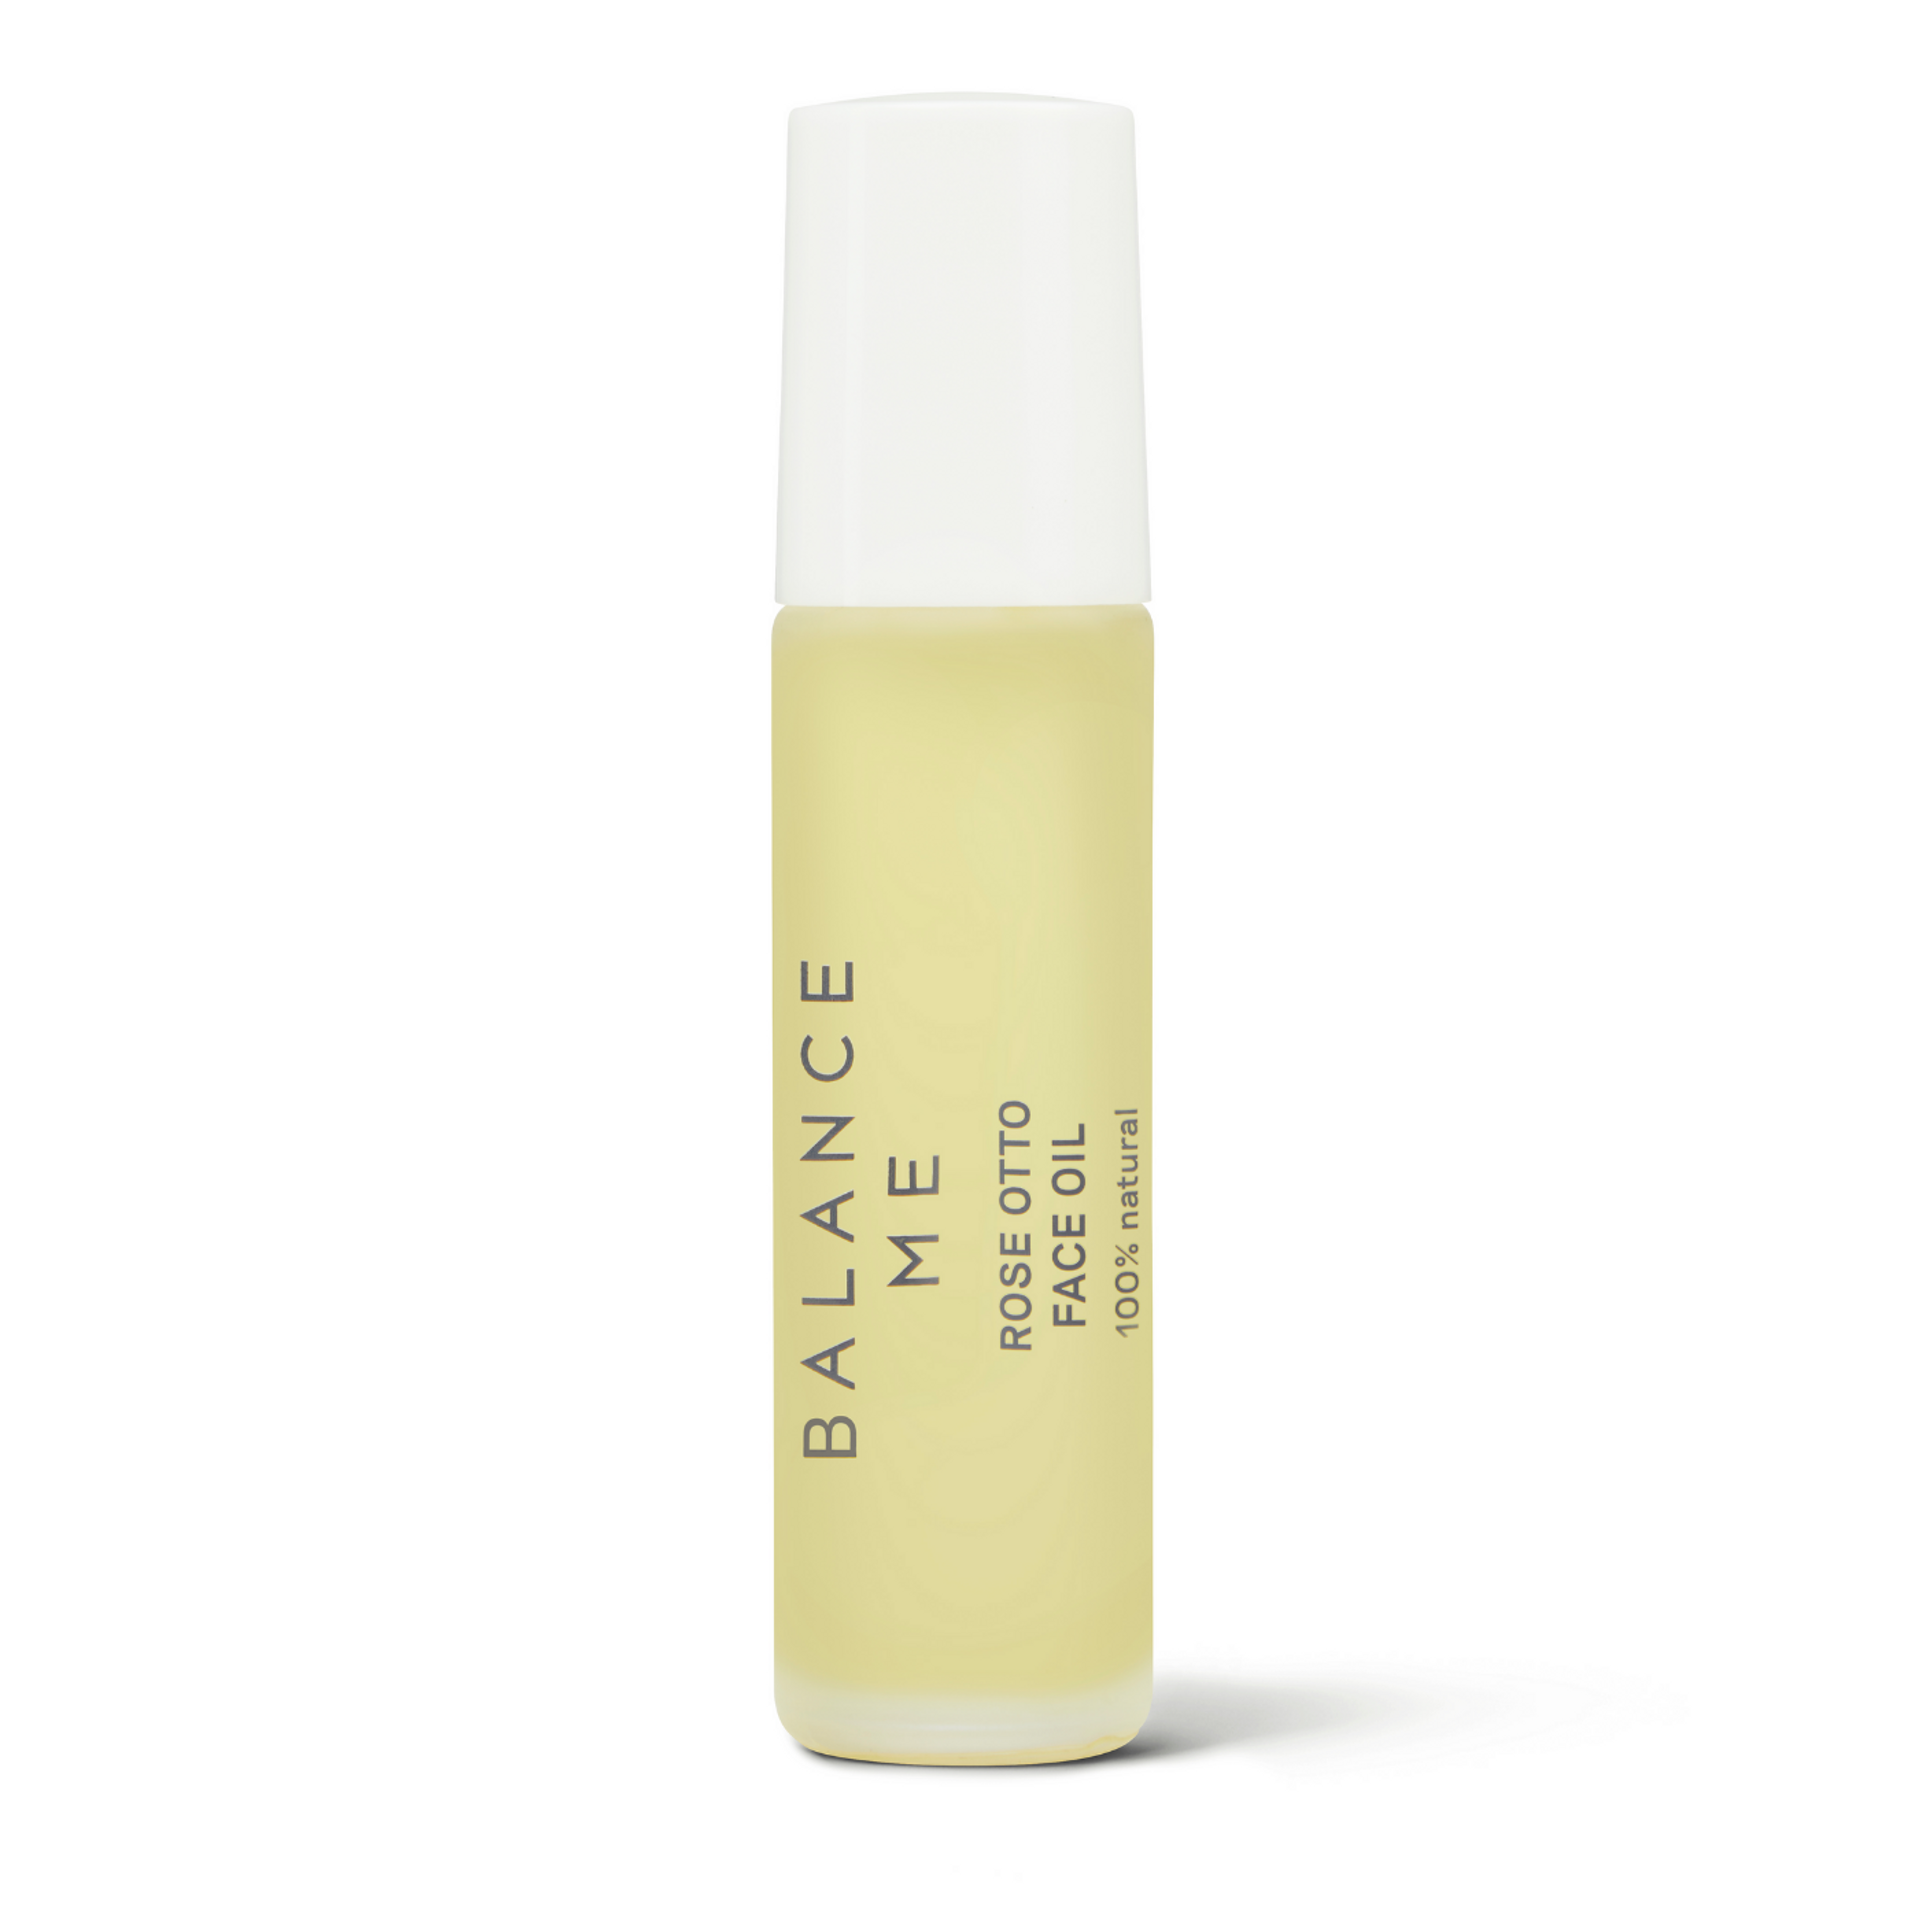 Rose Otto Face Oil 10ml